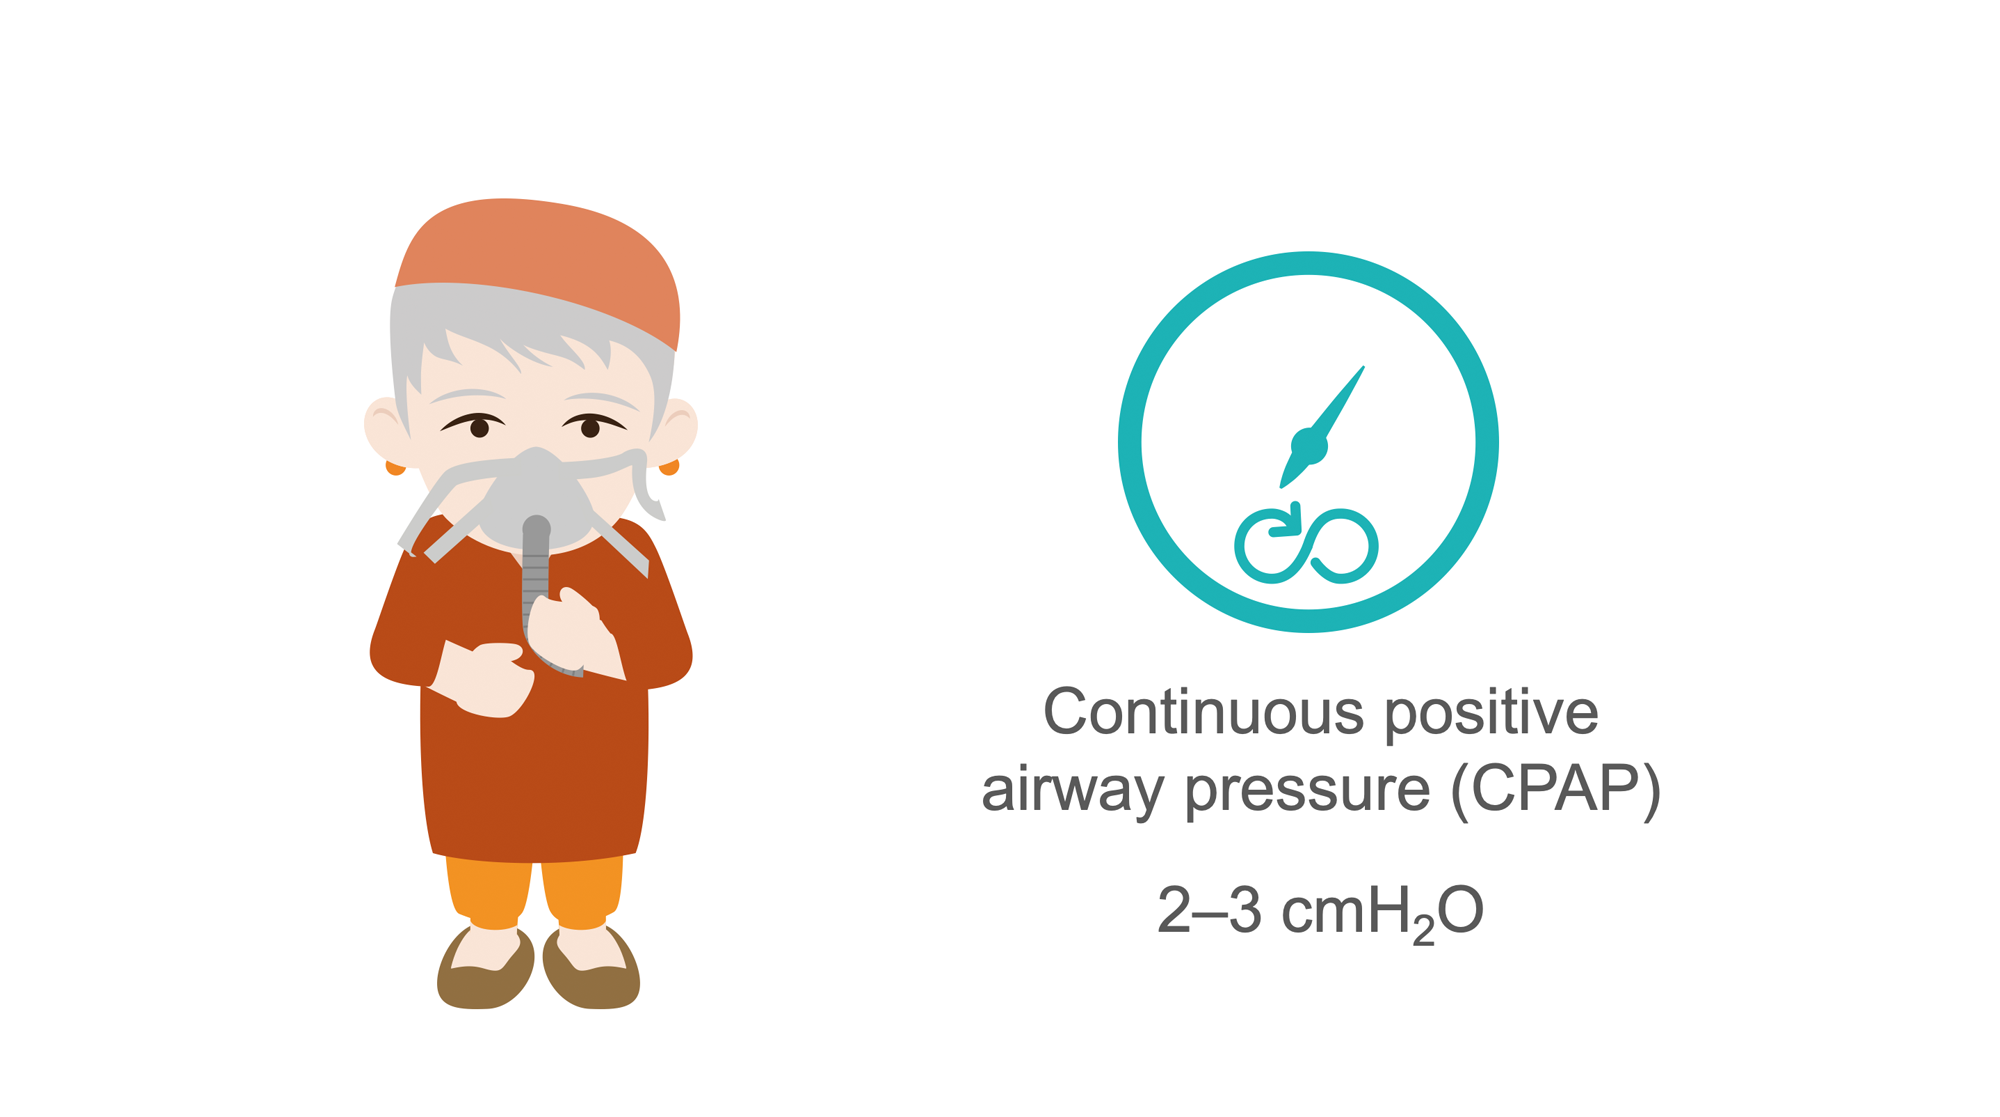 Older woman with grey hair and ventilator mast. Text and icon for setting of CPAP. Cartoon.